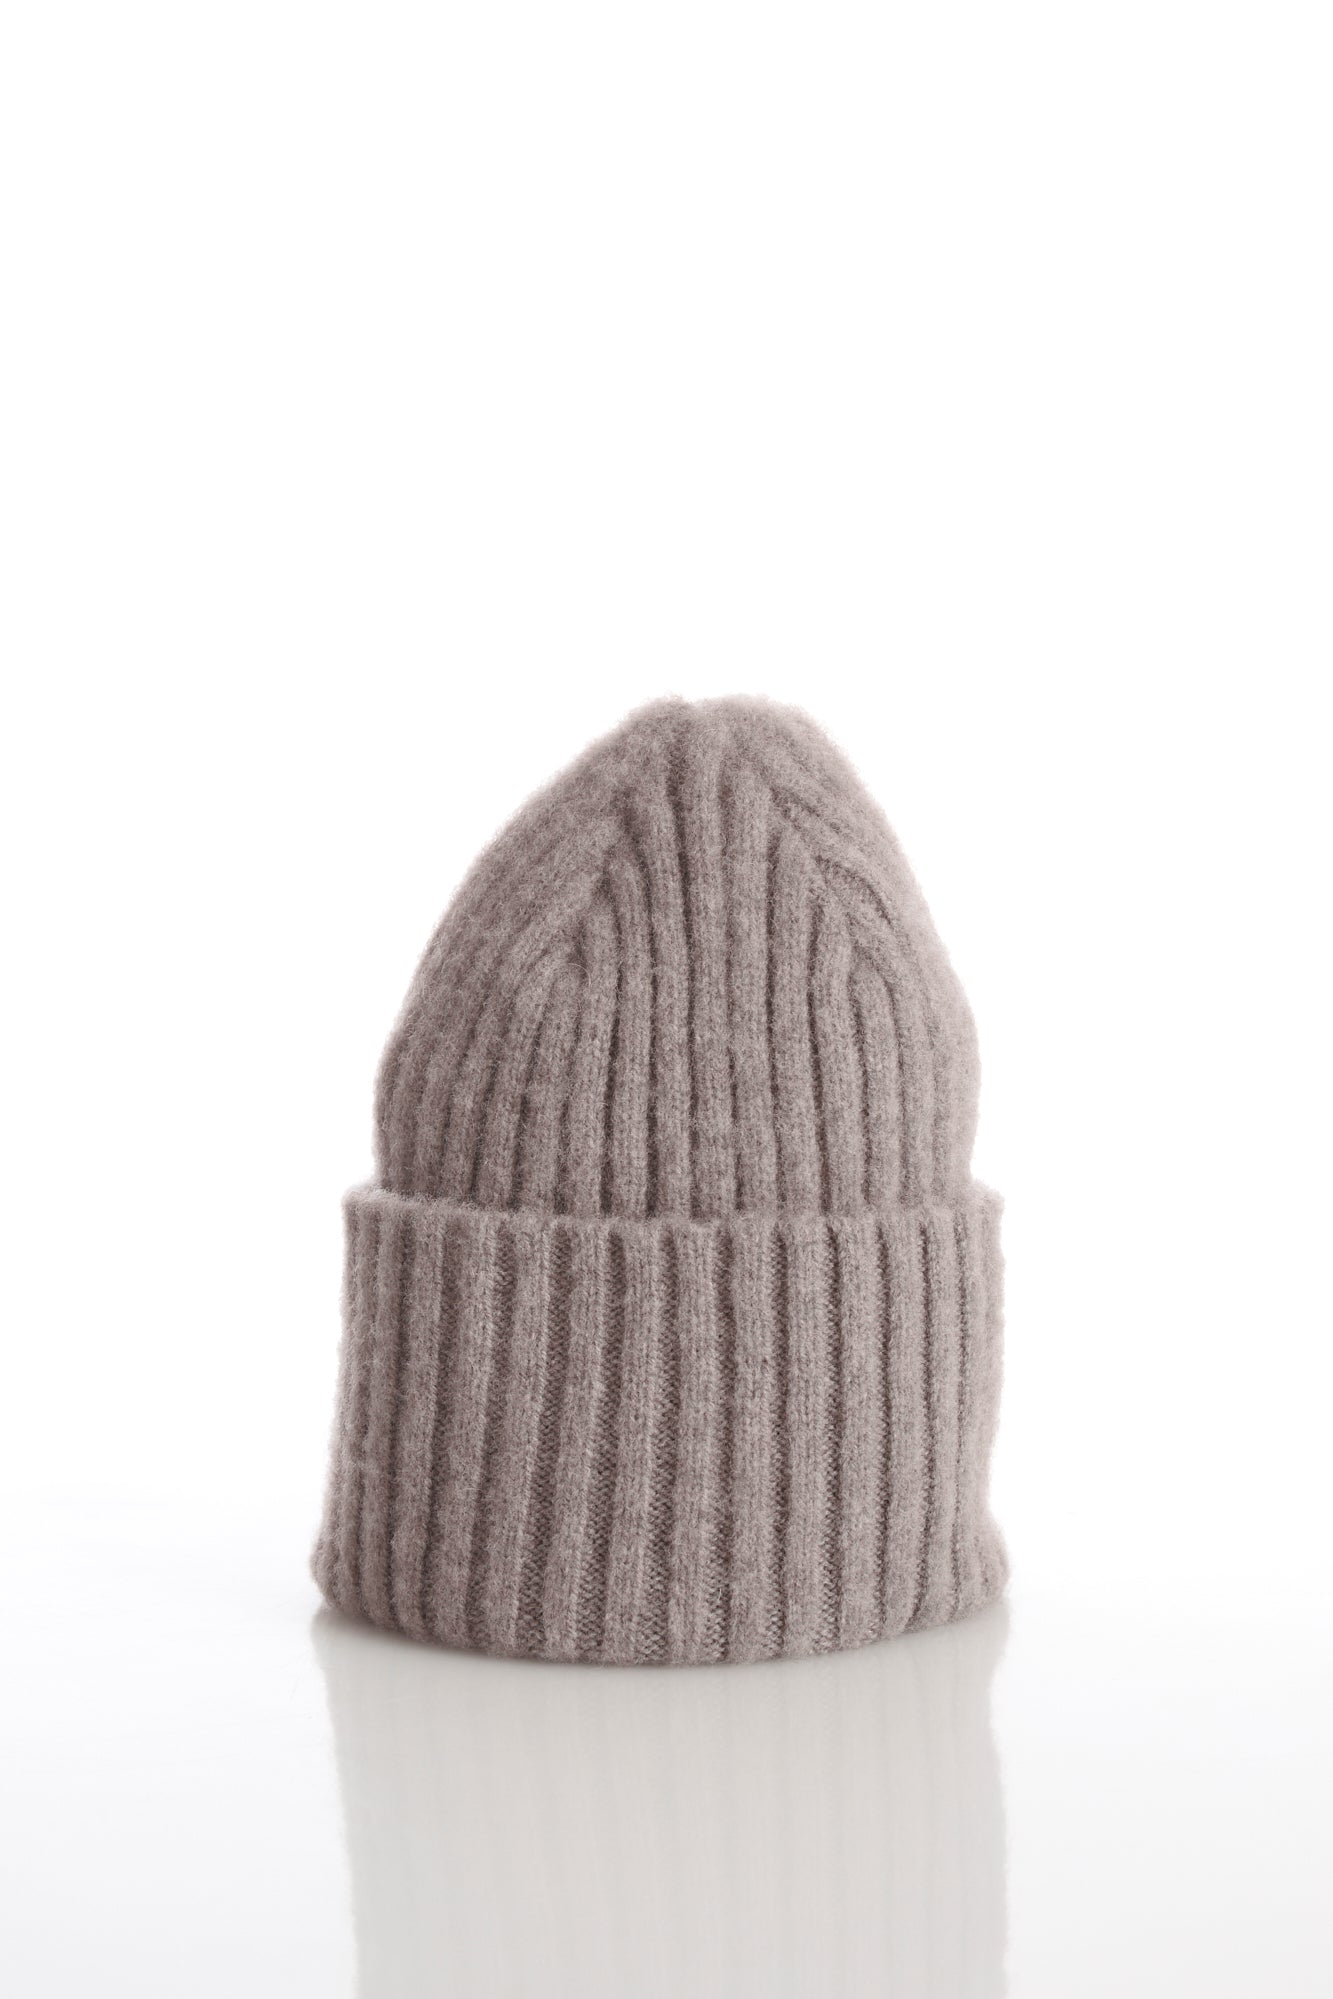 Drake's Beige Ribbed Merino Wool Hat - Accessories - Drake's - LALONDE's